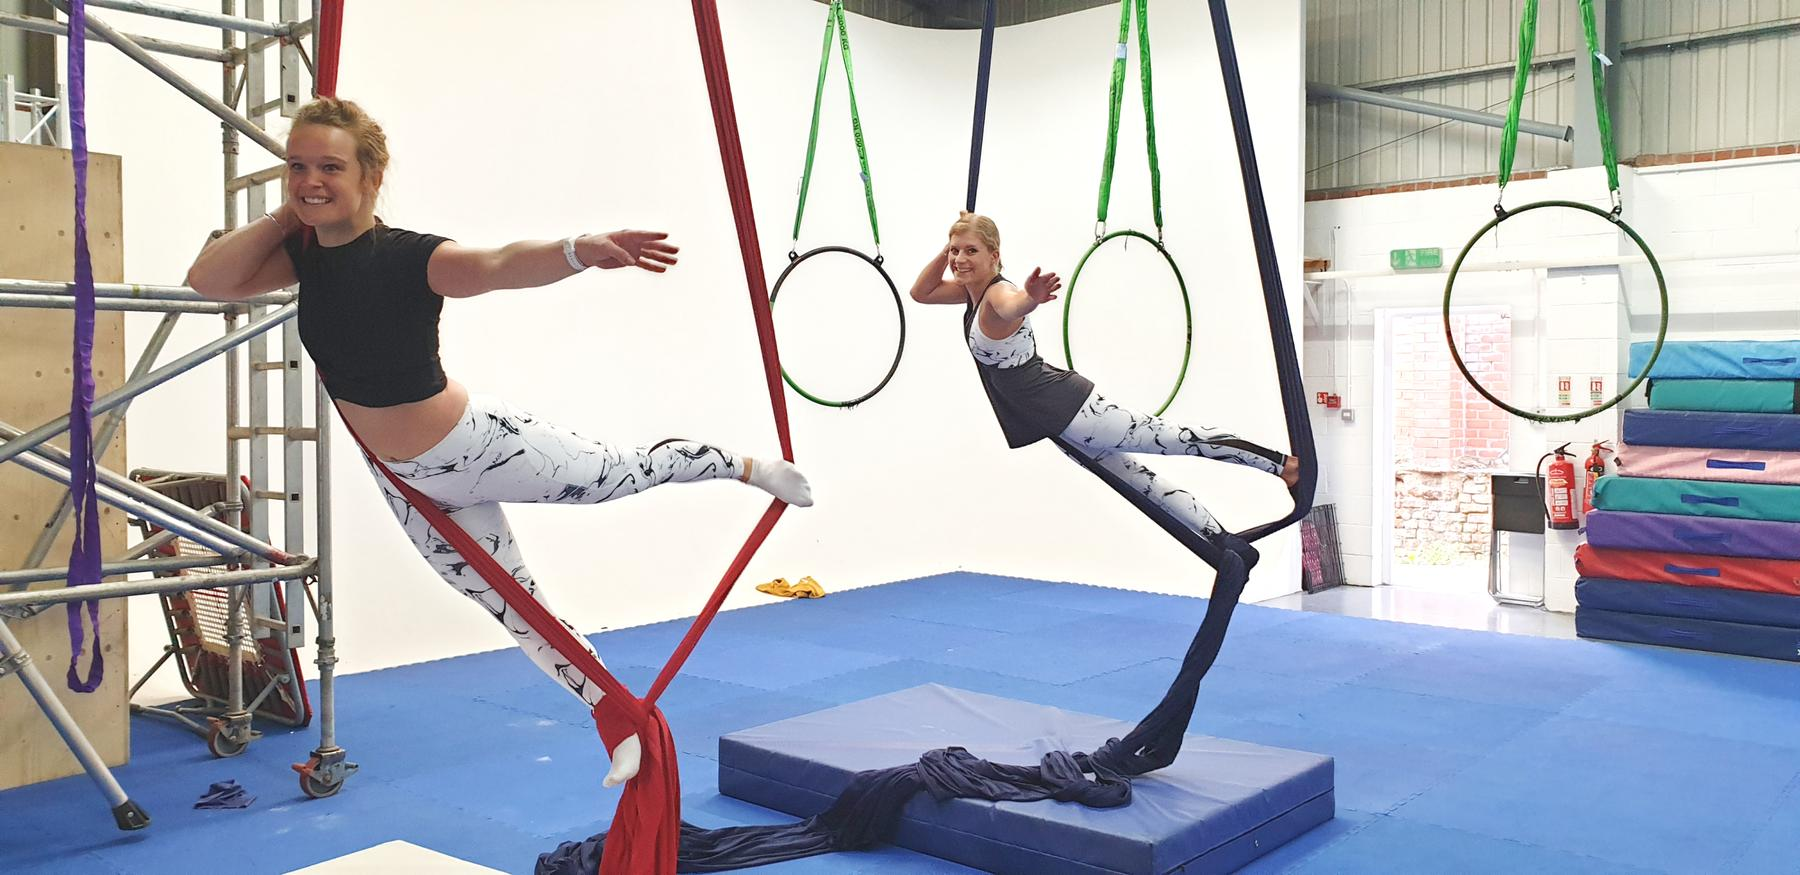 We Tried Aerial Arts | This Is How You *REALLY* Get Fit